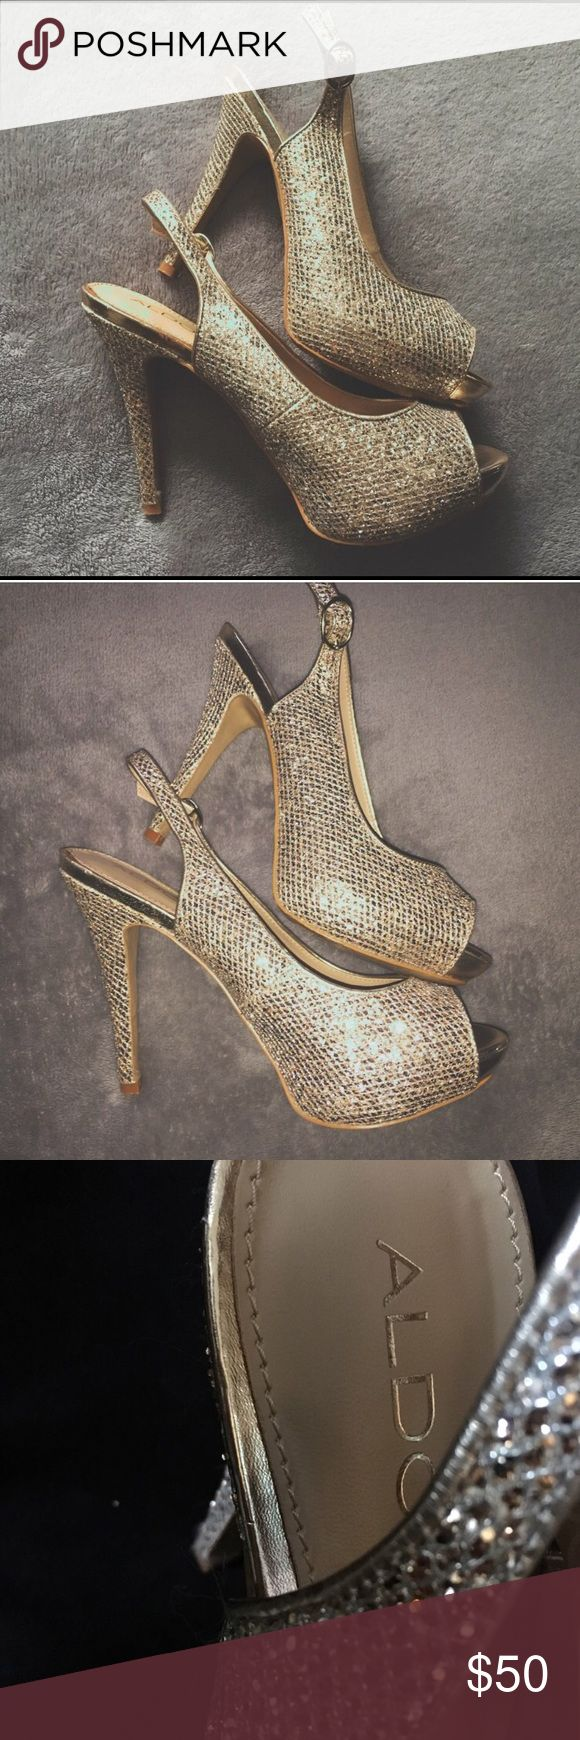 Sparkly Gold Aldo Heels Sparkly gold heels perfect for prom!! Only worn once. Aldo Shoes Heels